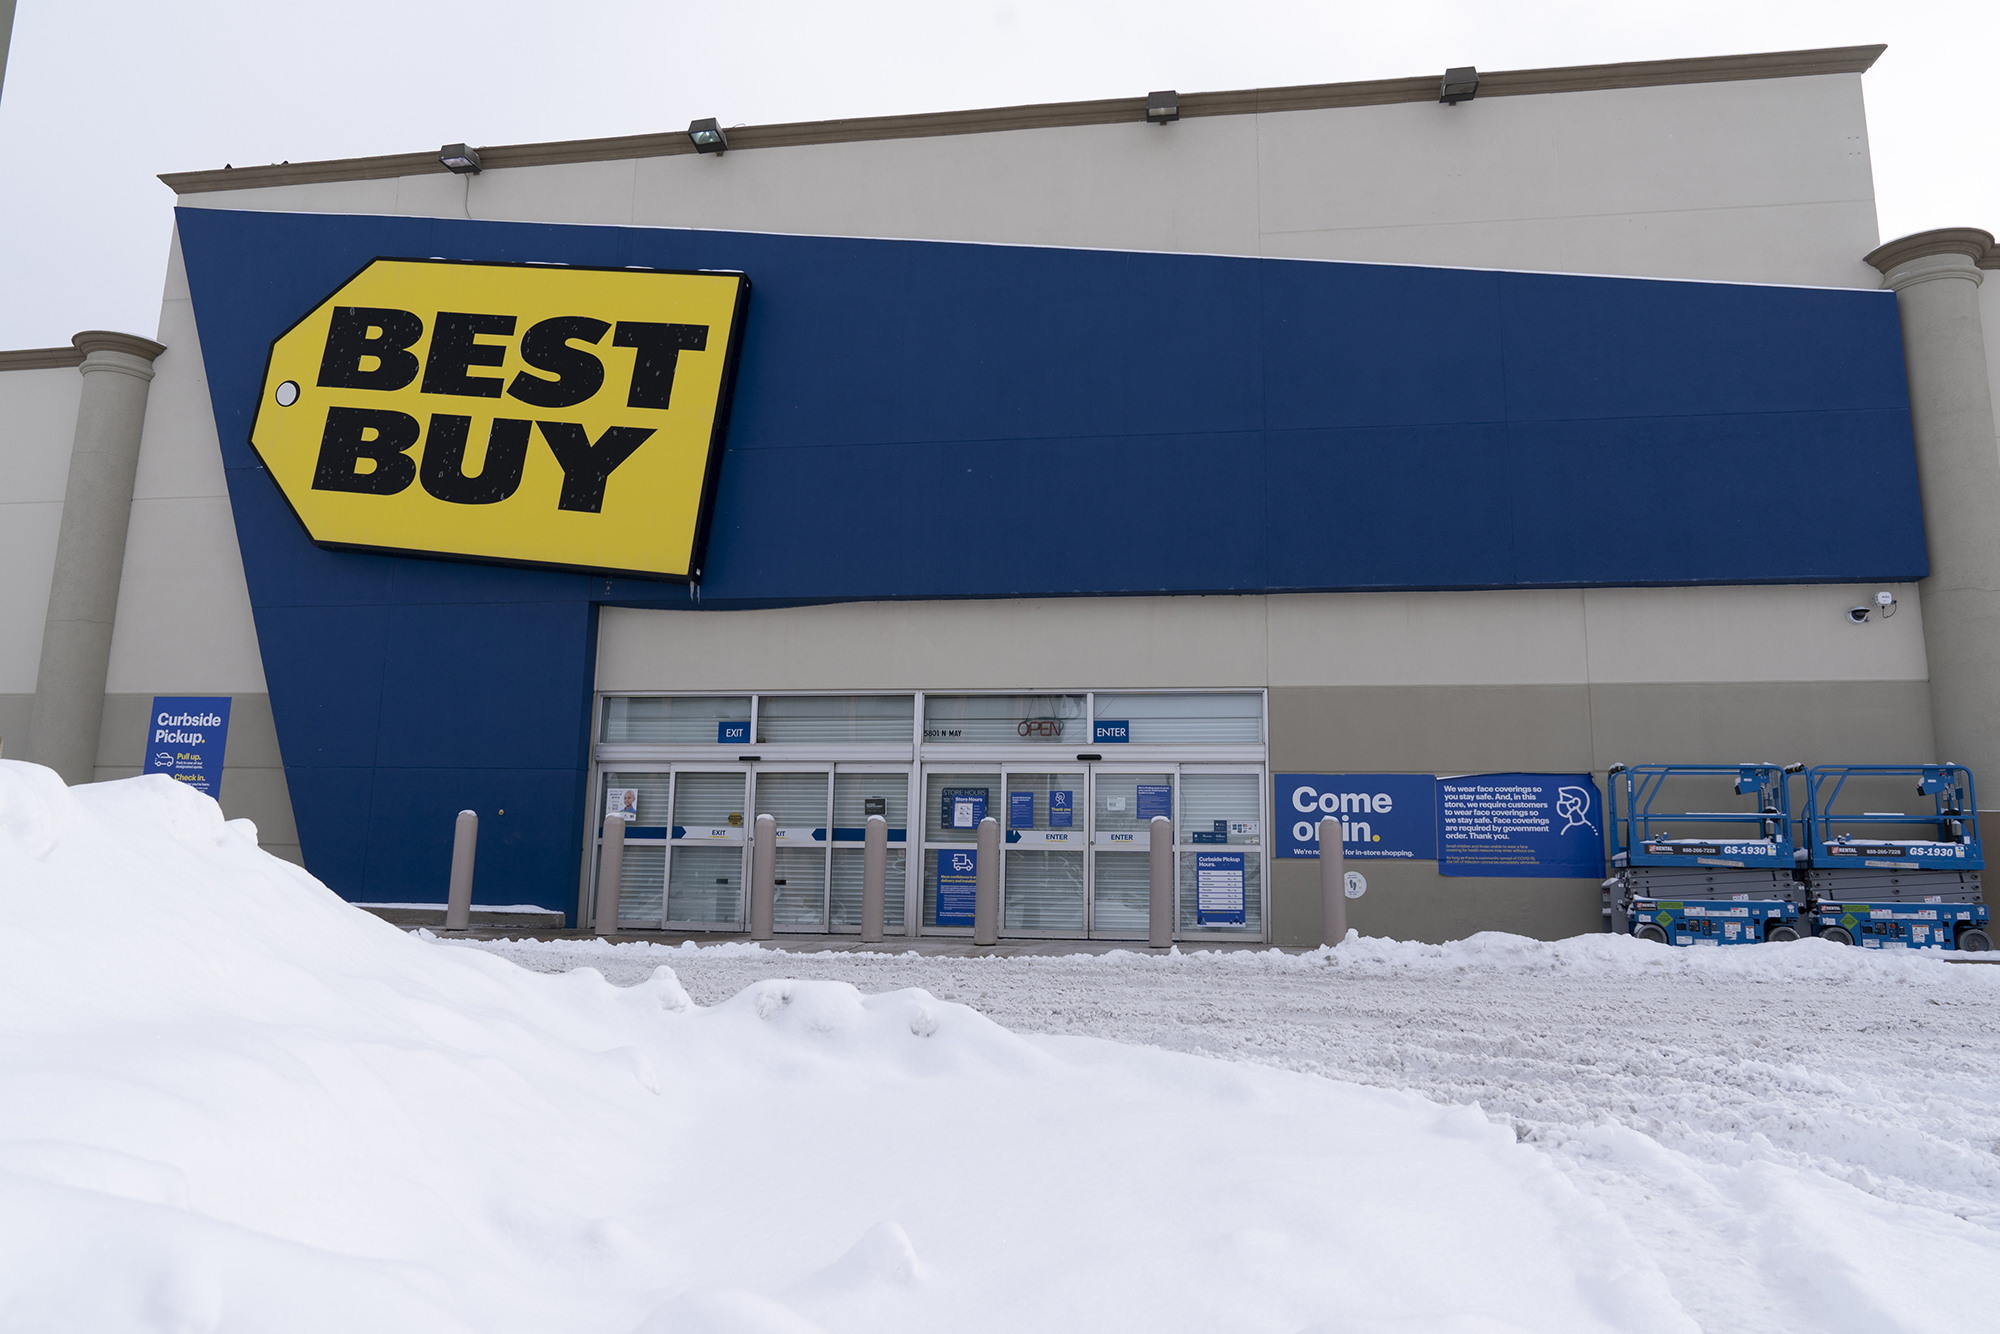 Best Buy just laid off 5,000 workers and will close more stores